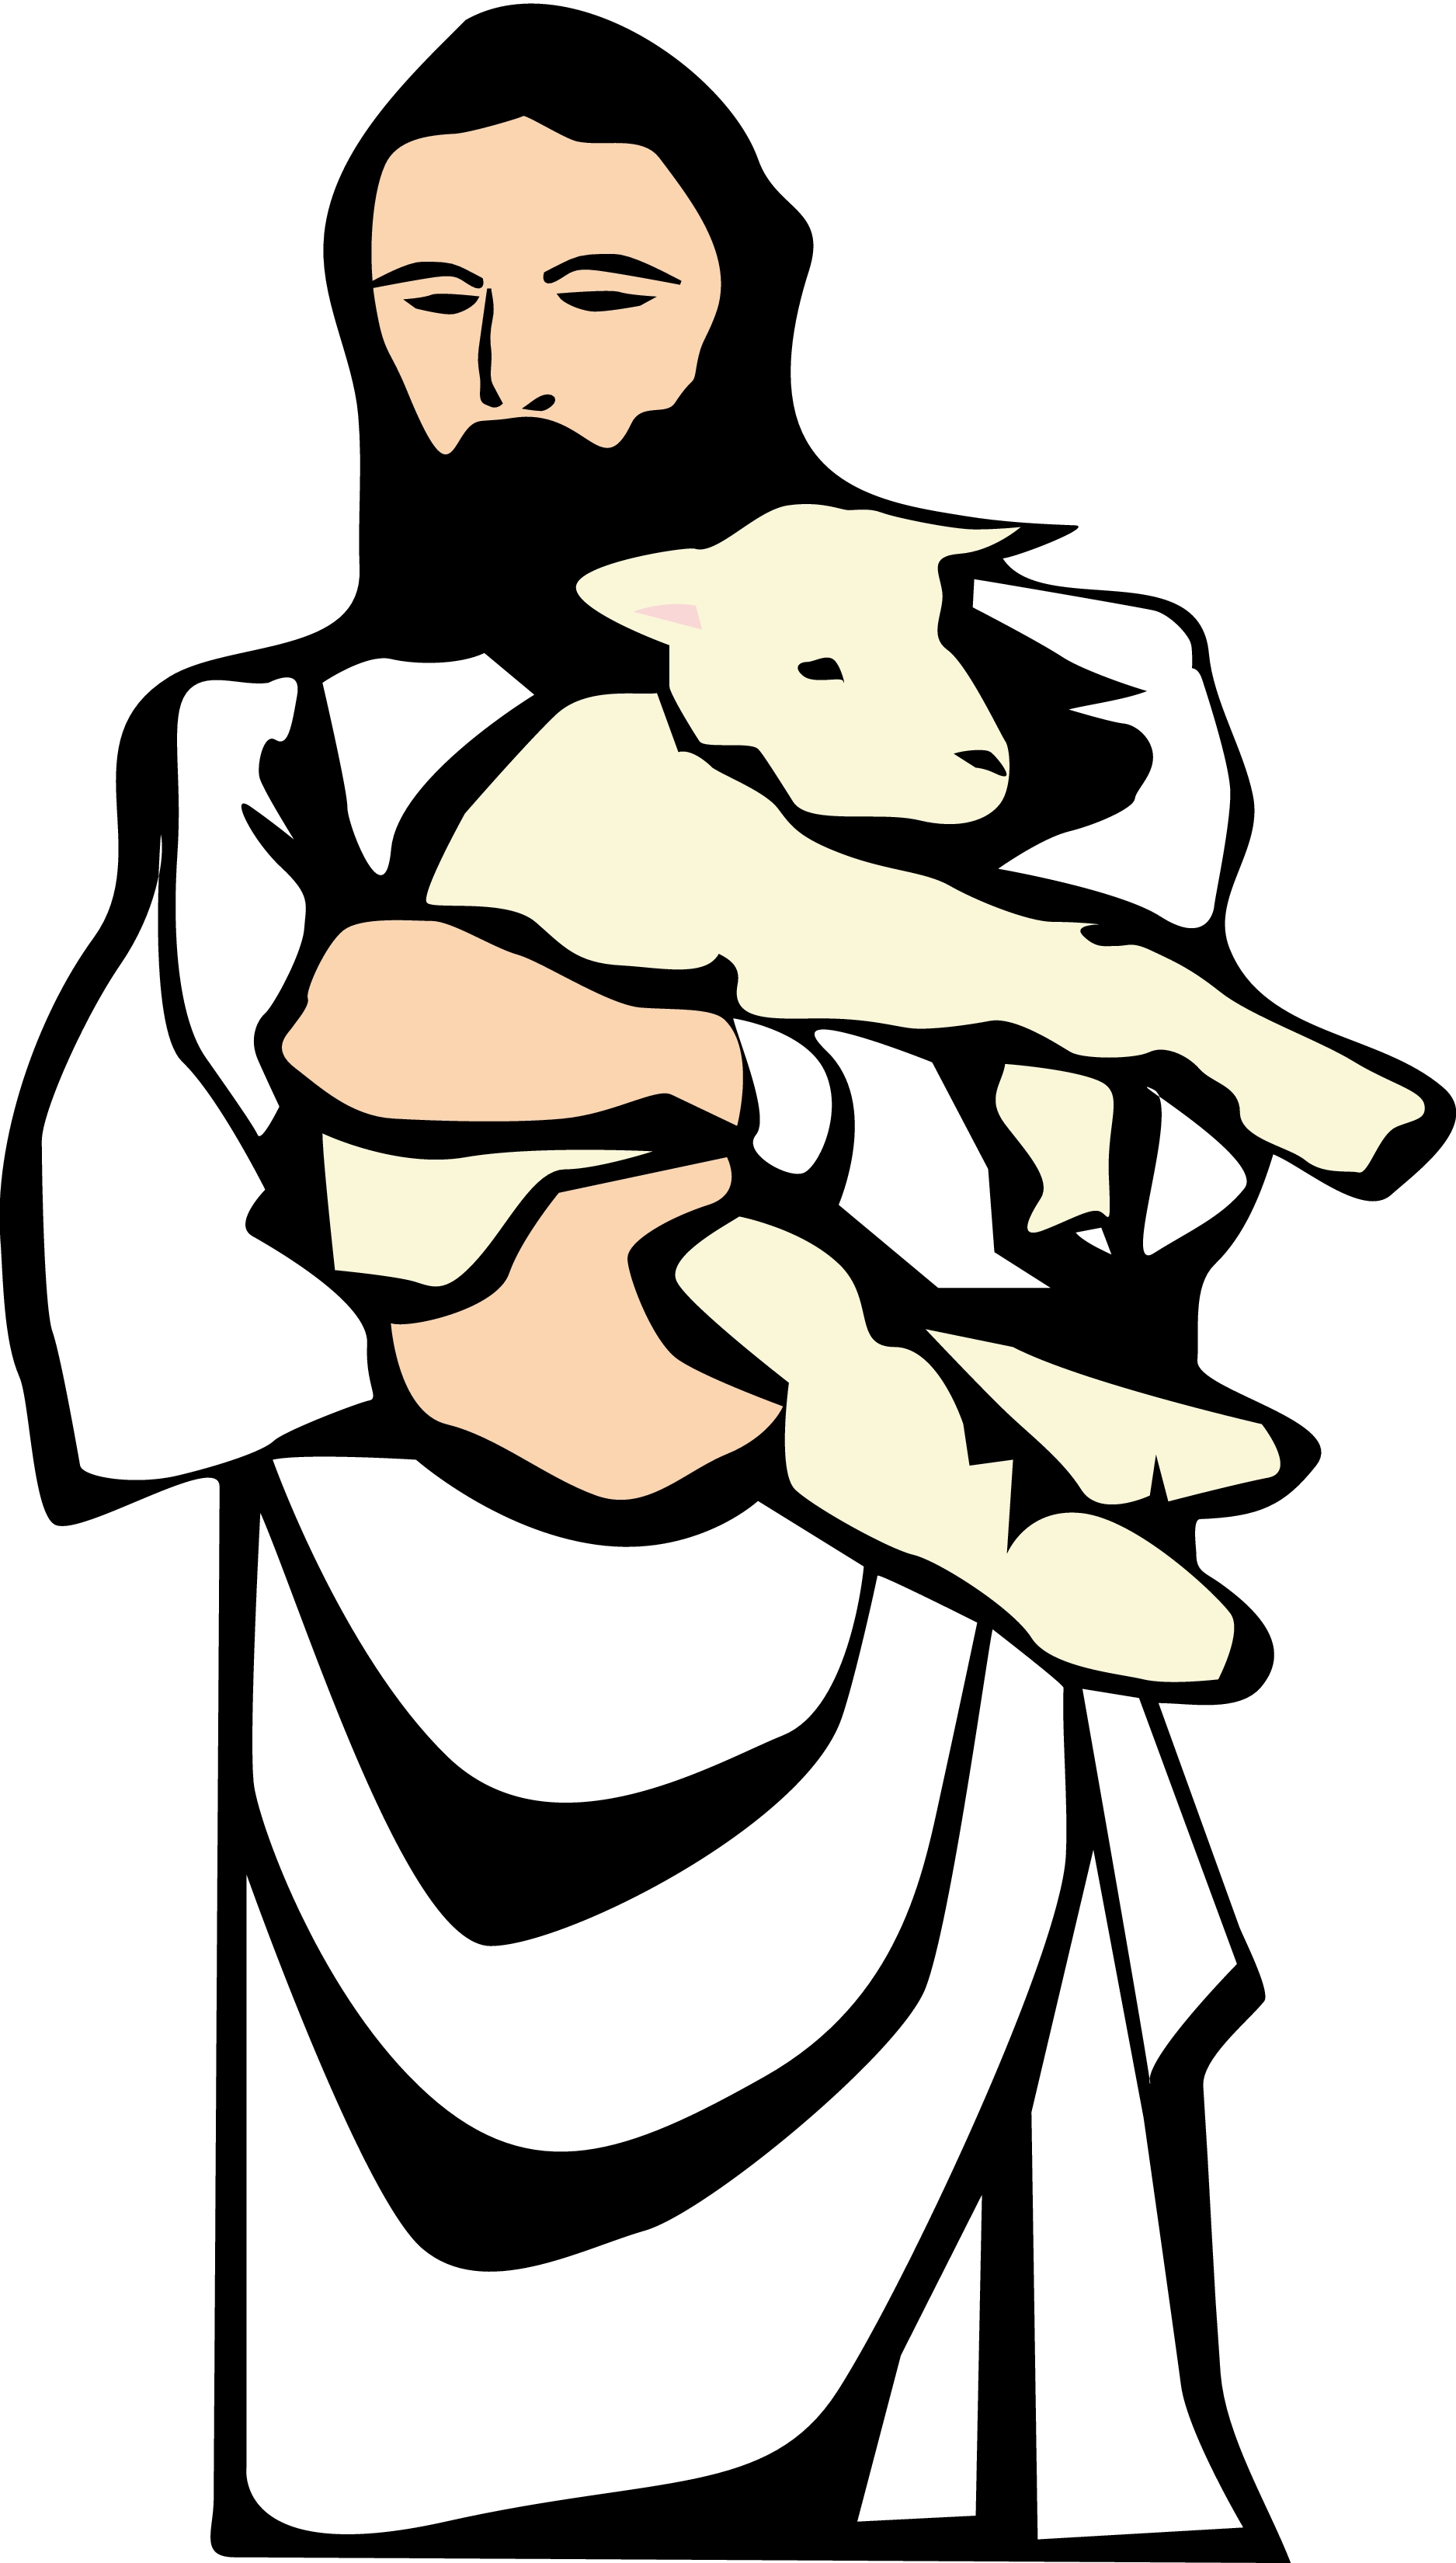 Clipart of jesus christ as a shepherd picture Free Shepherd Cliparts, Download Free Clip Art, Free Clip Art on ... picture